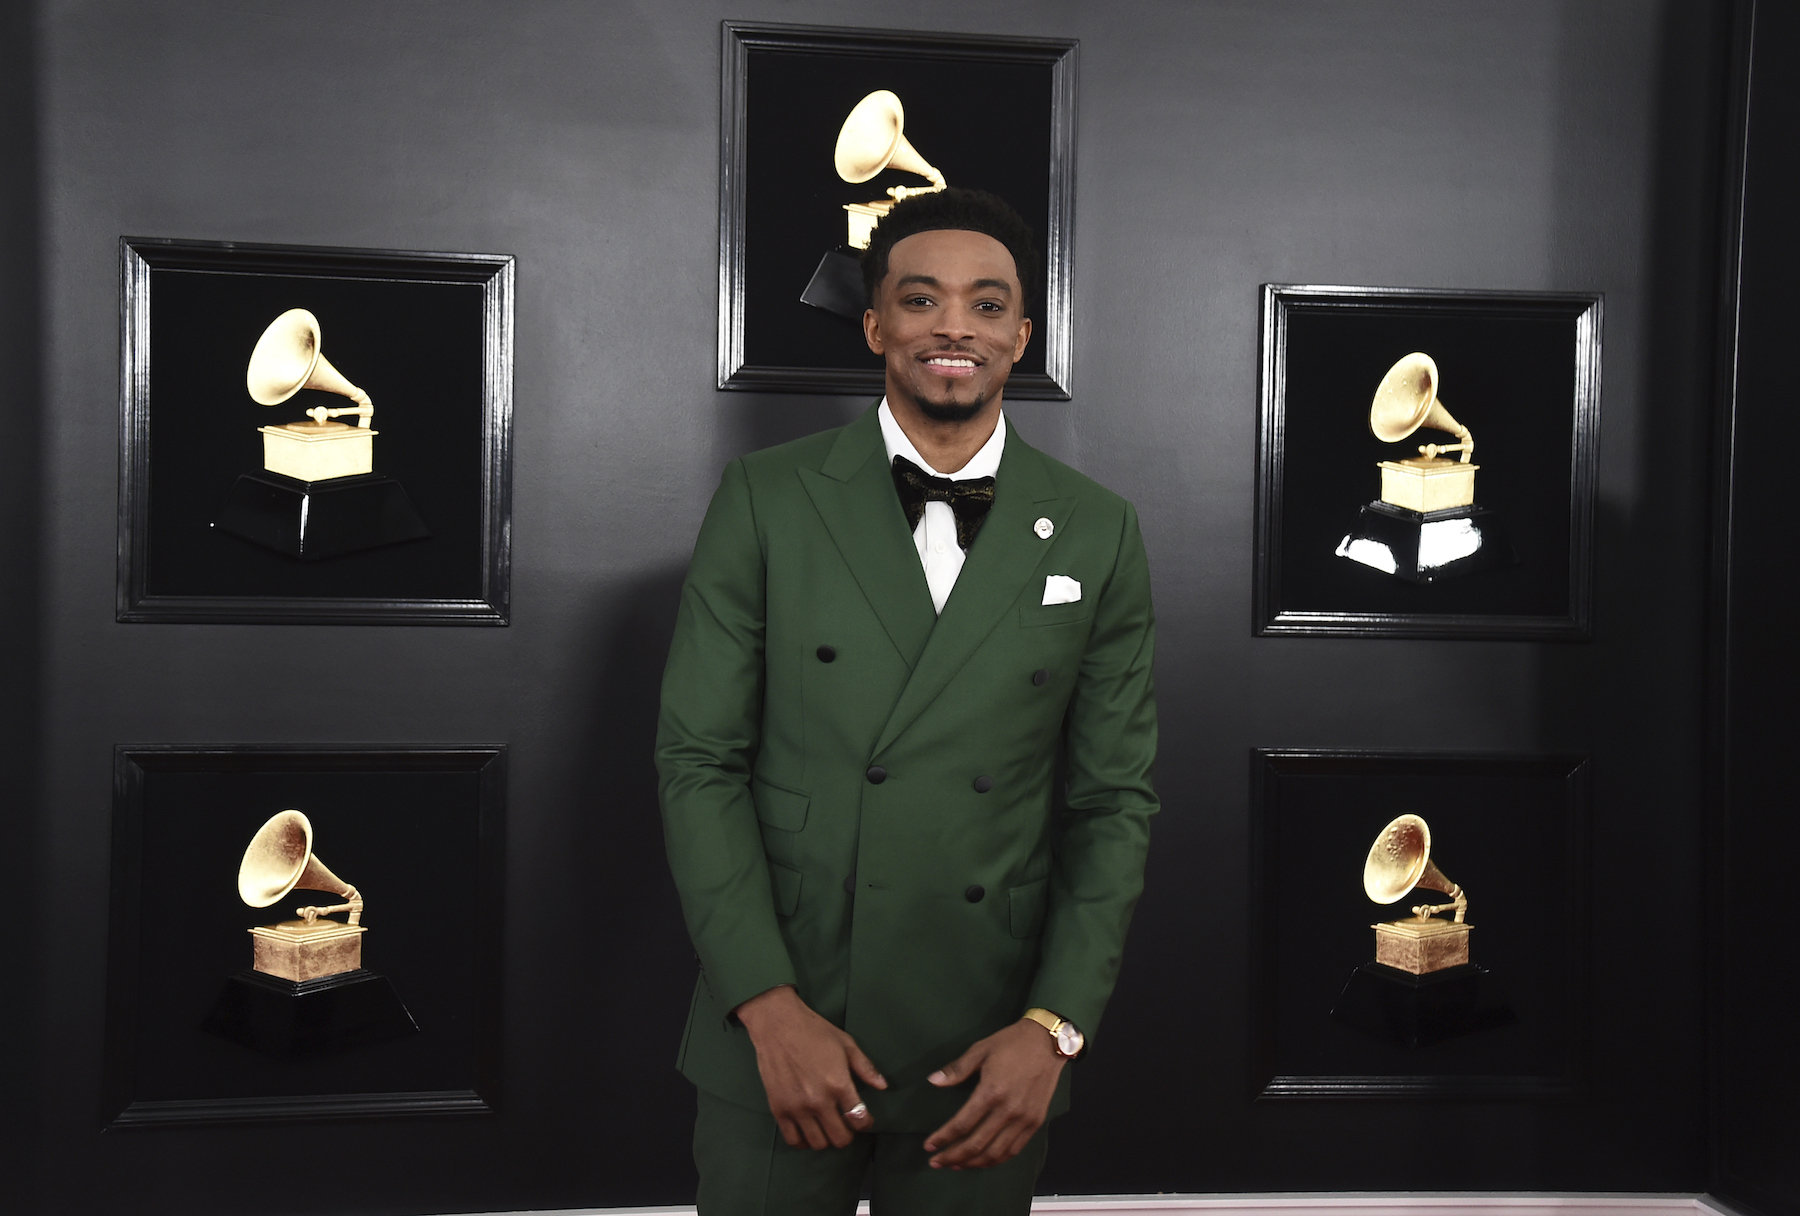 <div class='meta'><div class='origin-logo' data-origin='AP'></div><span class='caption-text' data-credit='Jordan Strauss/Invision/AP'>Jonathan McReynolds arrives at the 61st annual Grammy Awards at the Staples Center on Sunday, Feb. 10, 2019, in Los Angeles.</span></div>